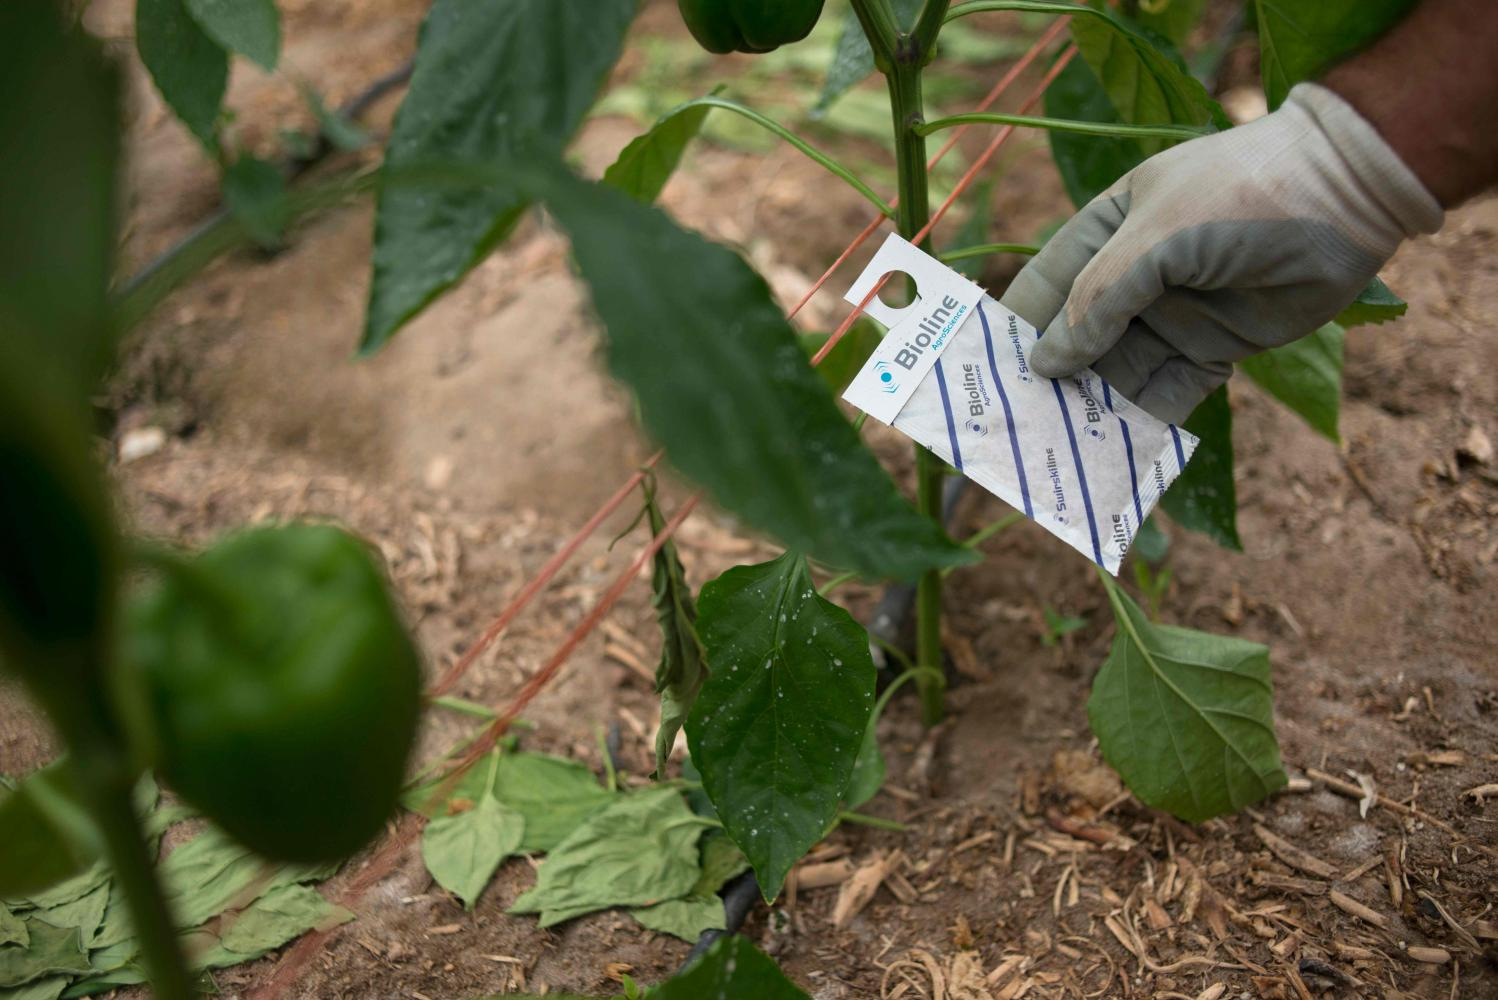 Spanish farmer Antonio Zamora checks an envelope full of mites hanging close to pepper plants in his greenhouse in Dalias. (Photo: AFP)